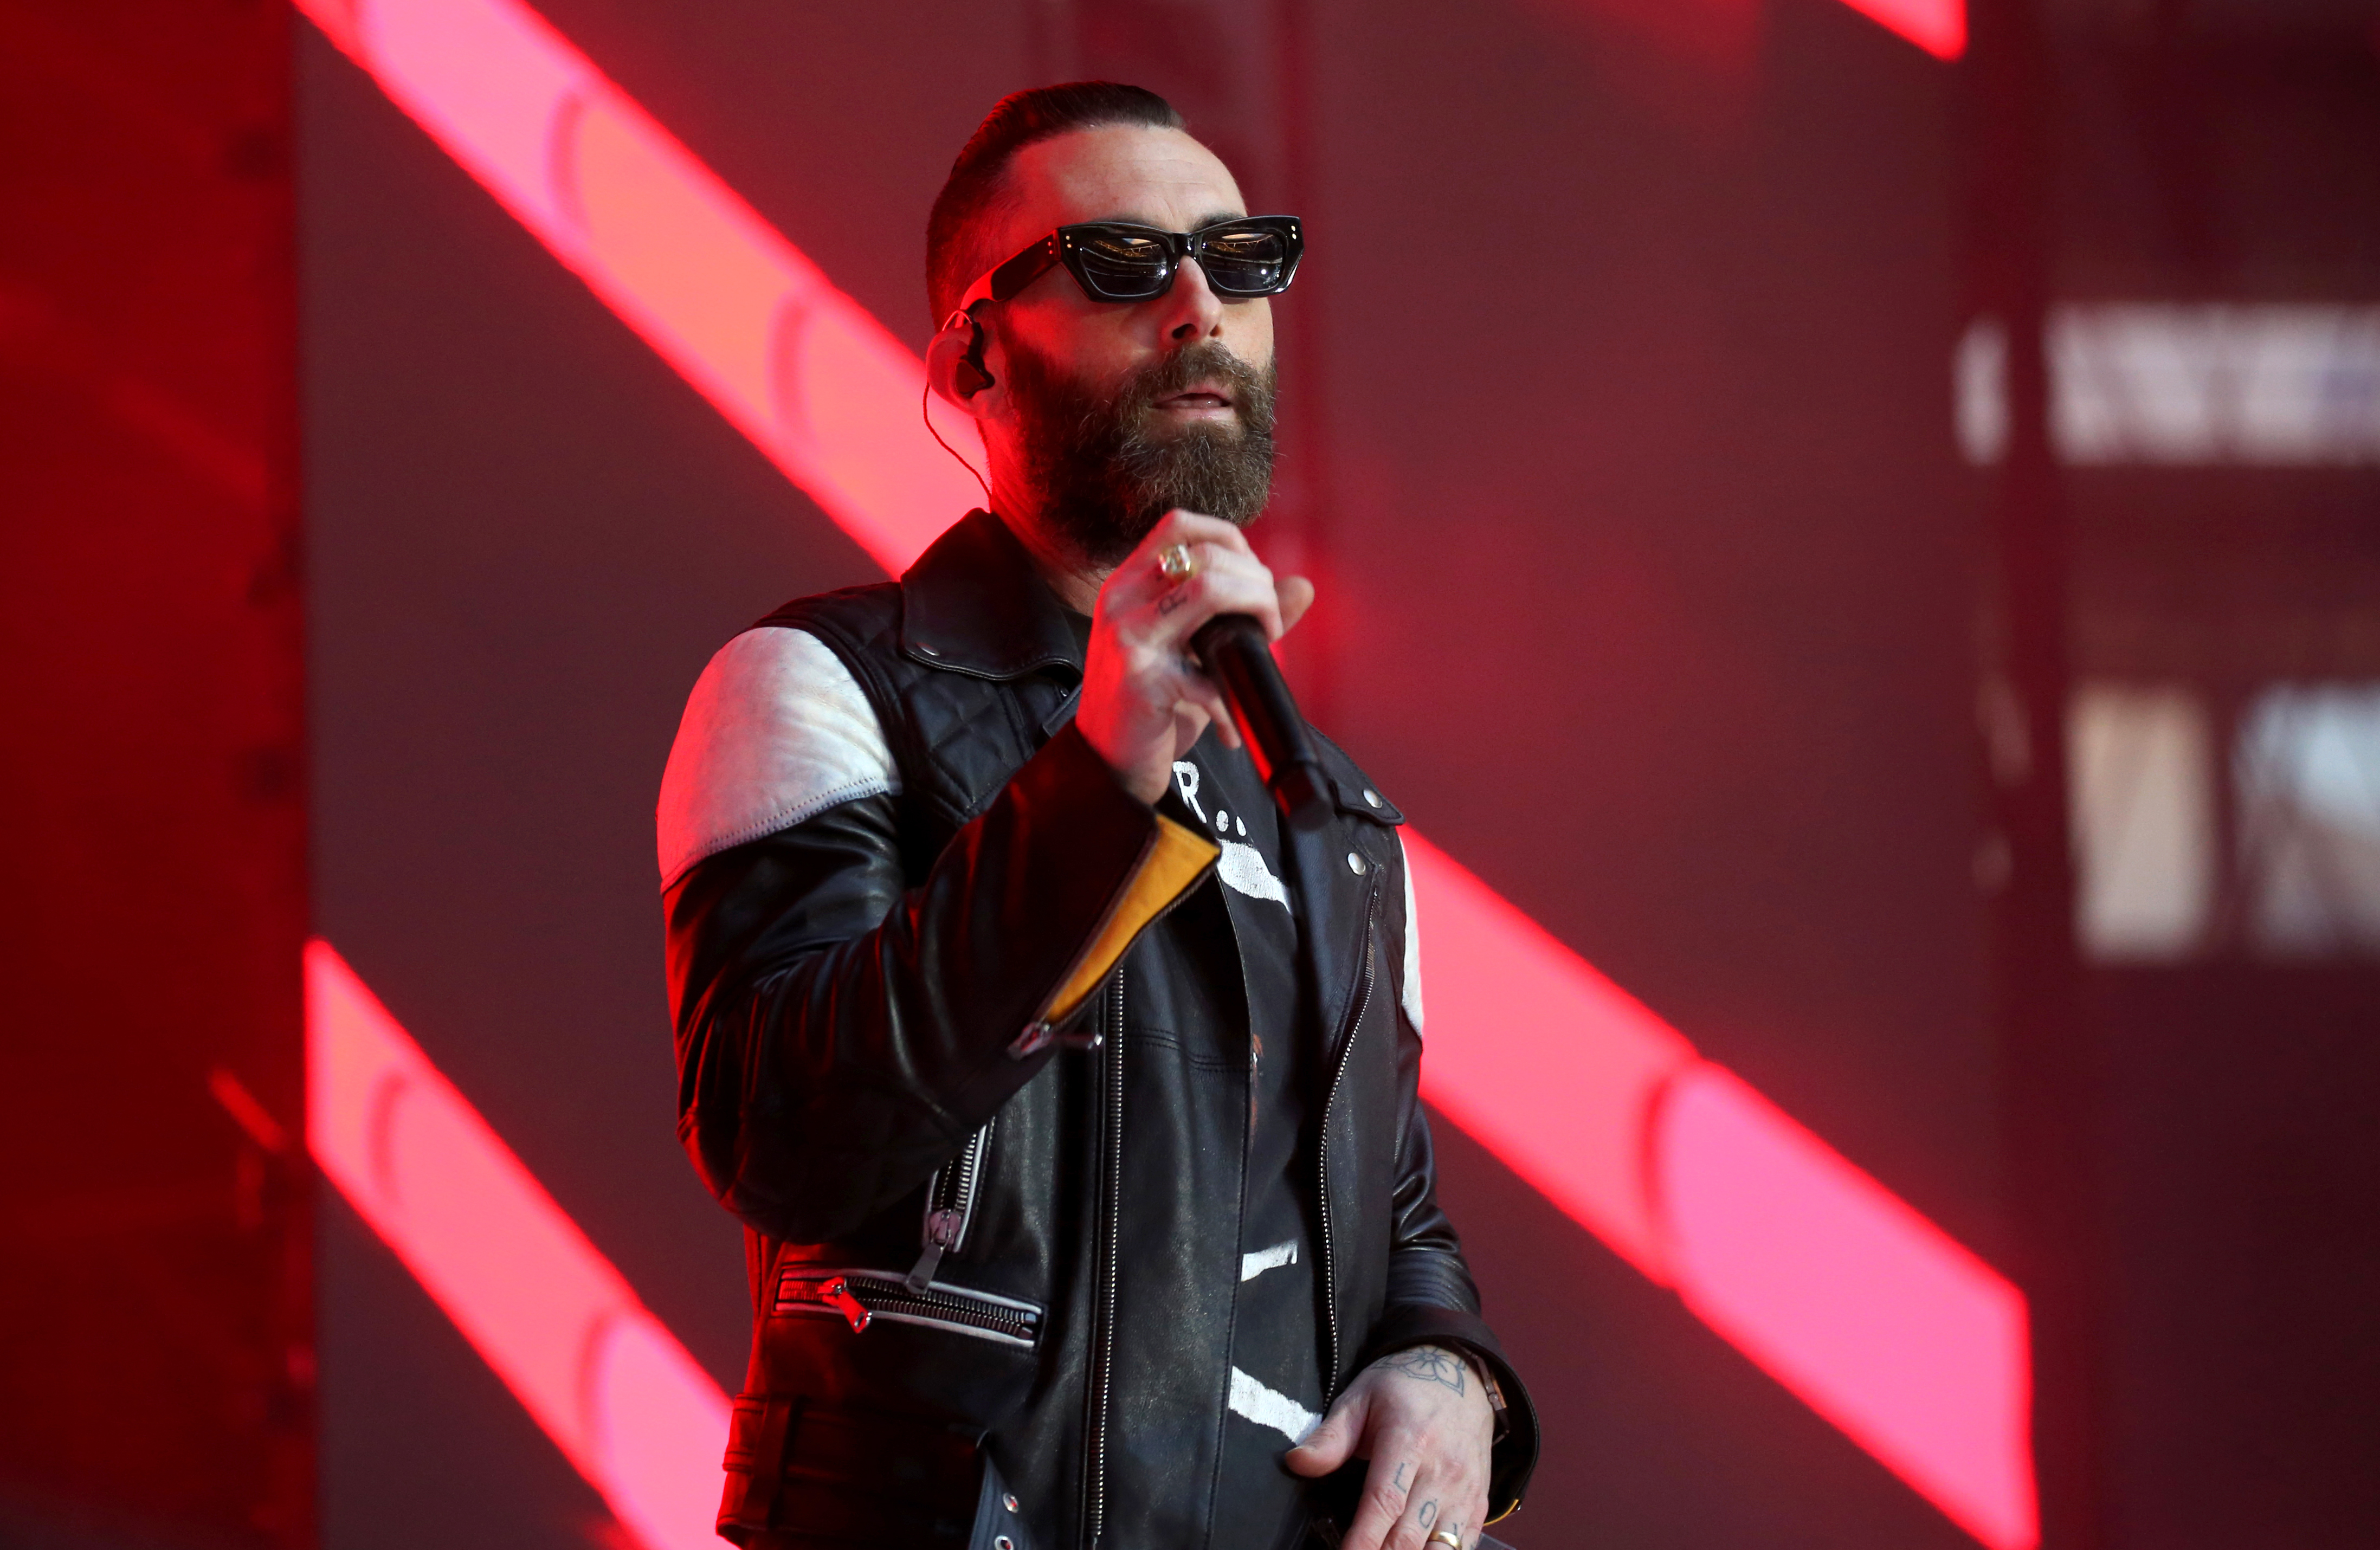 Adam Levine Gets Blasted By Social Media Over Corn Hawk